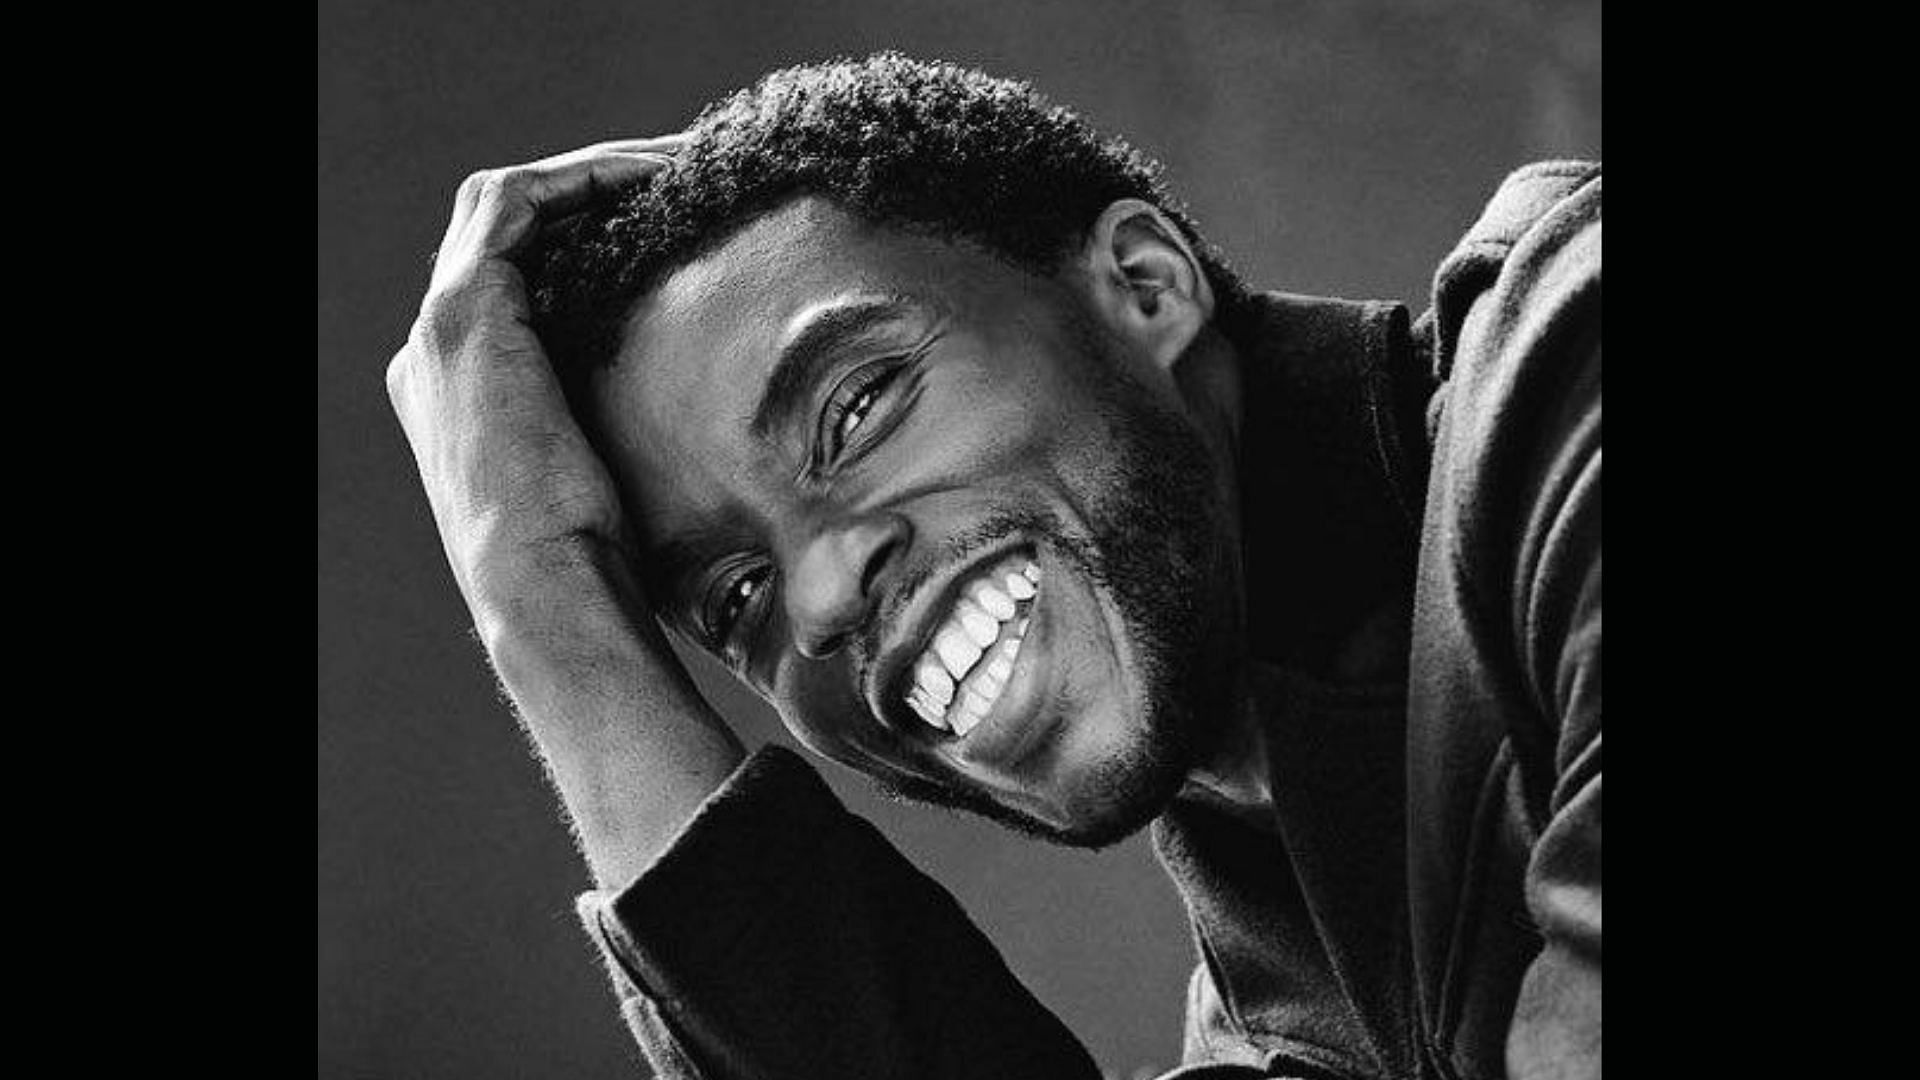 Black Panther Star Chadwick Boseman Dies After Battling Cancer